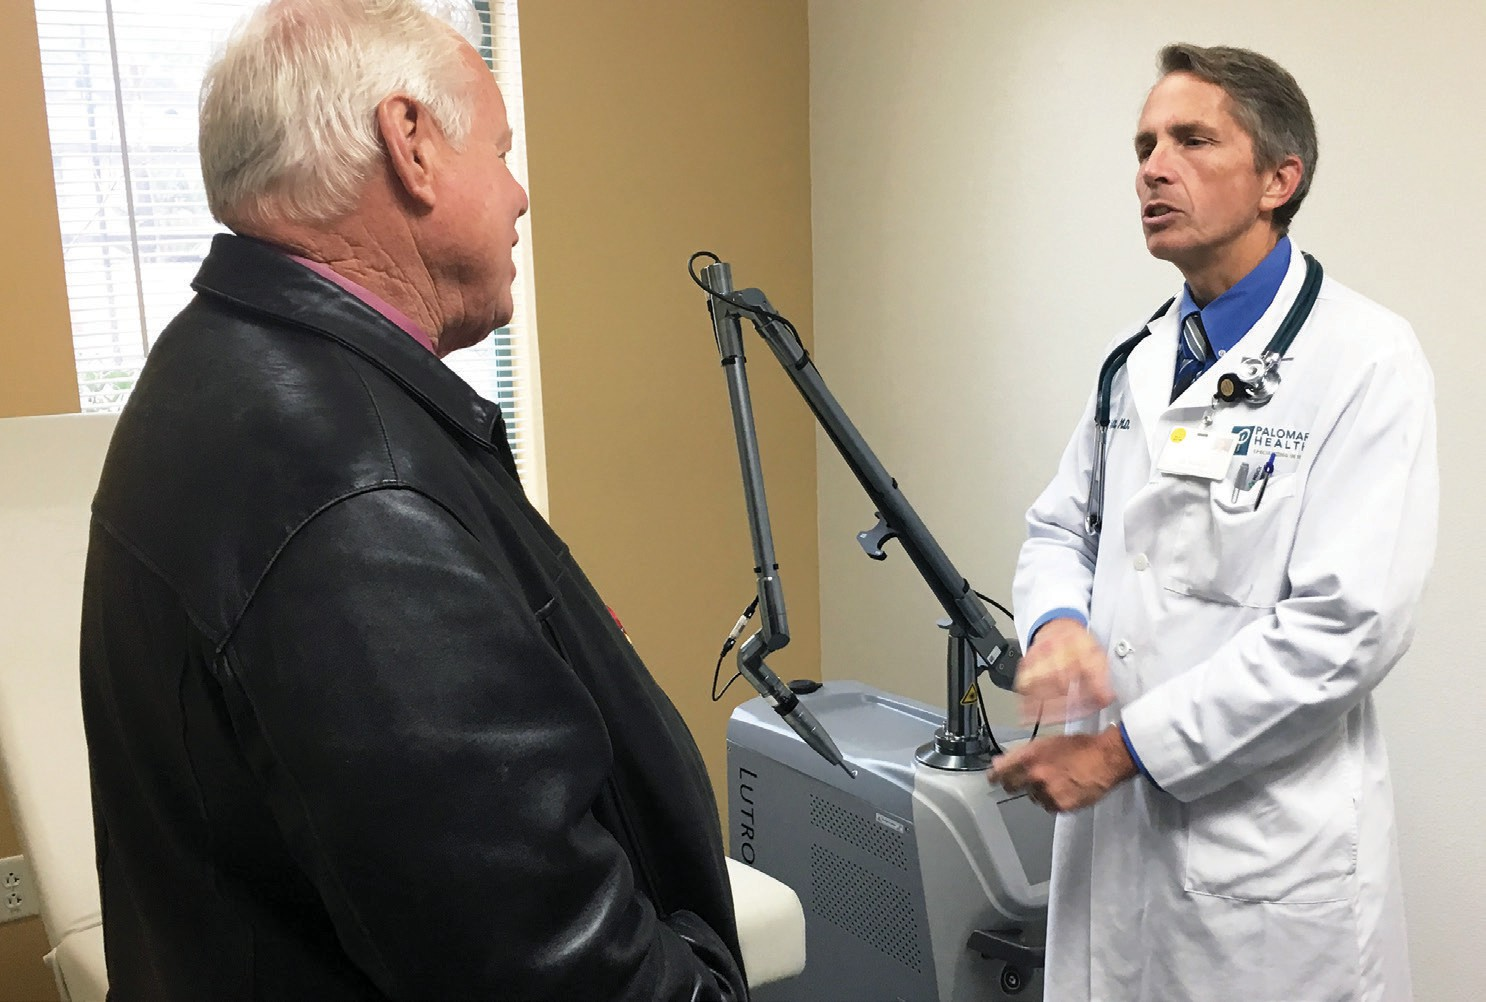 Supervisor Bill Horn speaking with Neighborhood Healthcare Medical Director Dr. James Schultz. Dr. Schultz will be overseeing the actual medical portion of the program and will be performing the gang tattoo removal.